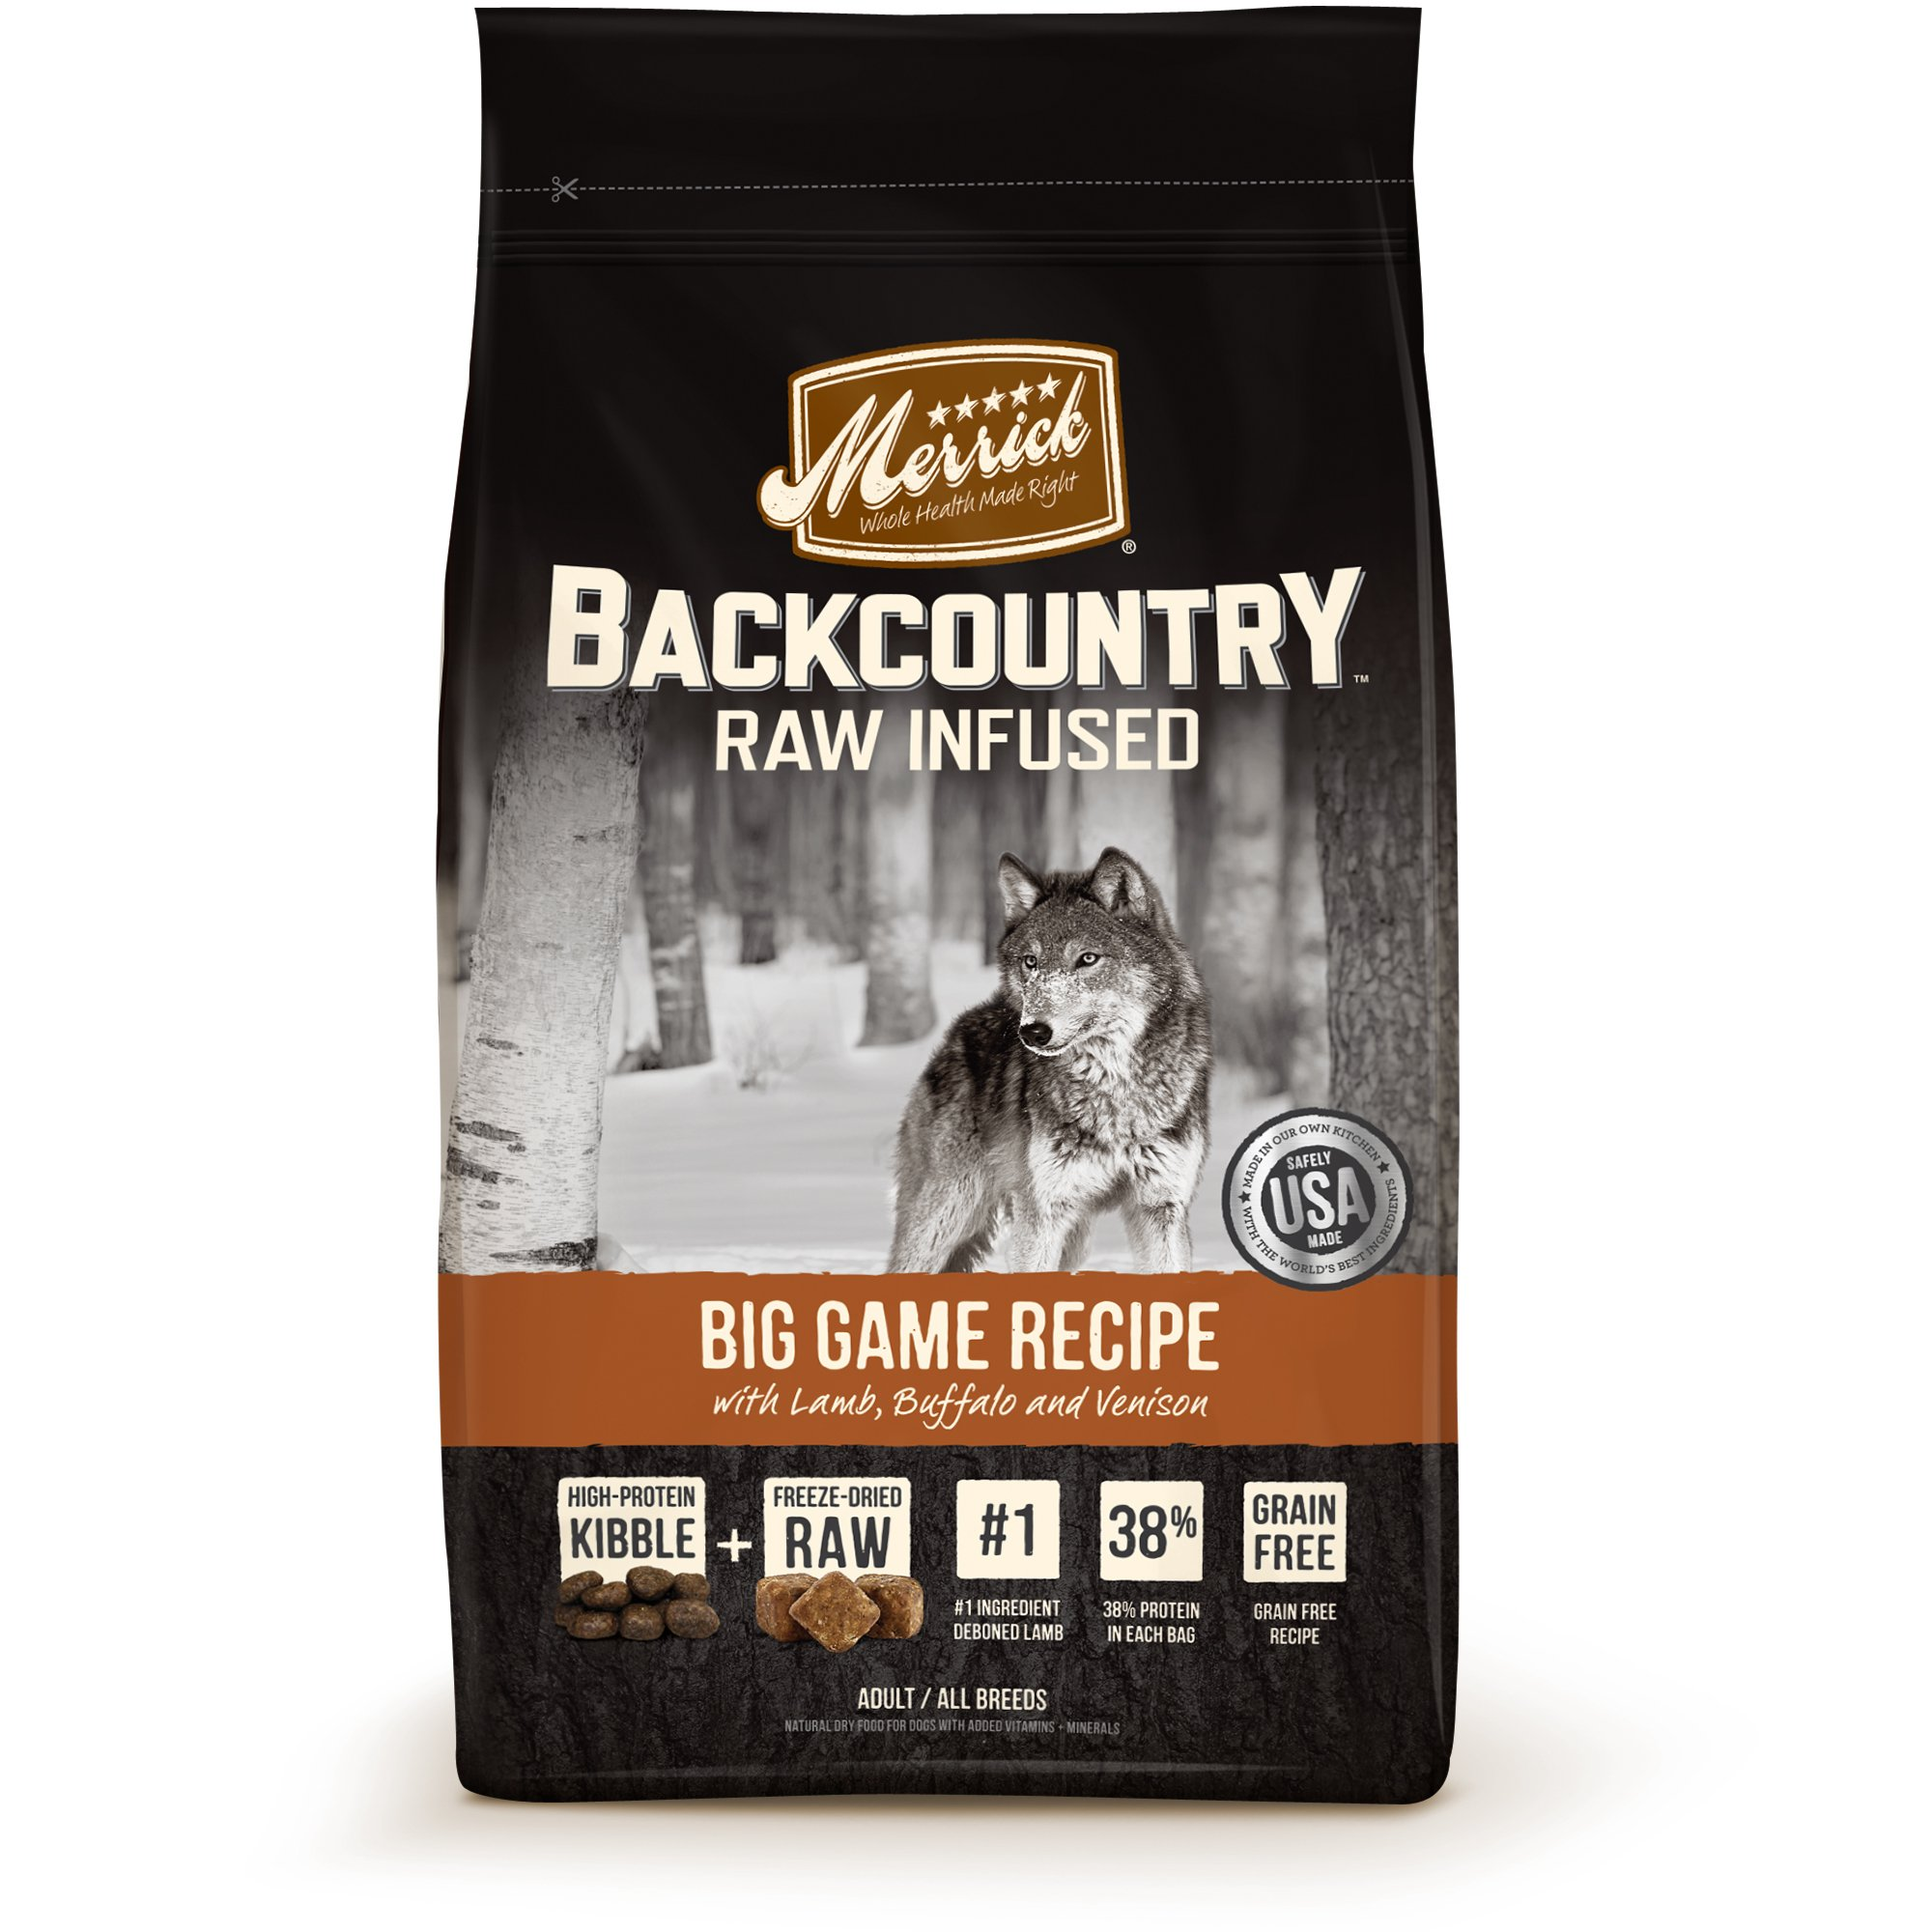 Merrick Backcountry Grain Free Raw Infused Game Bird 22lb